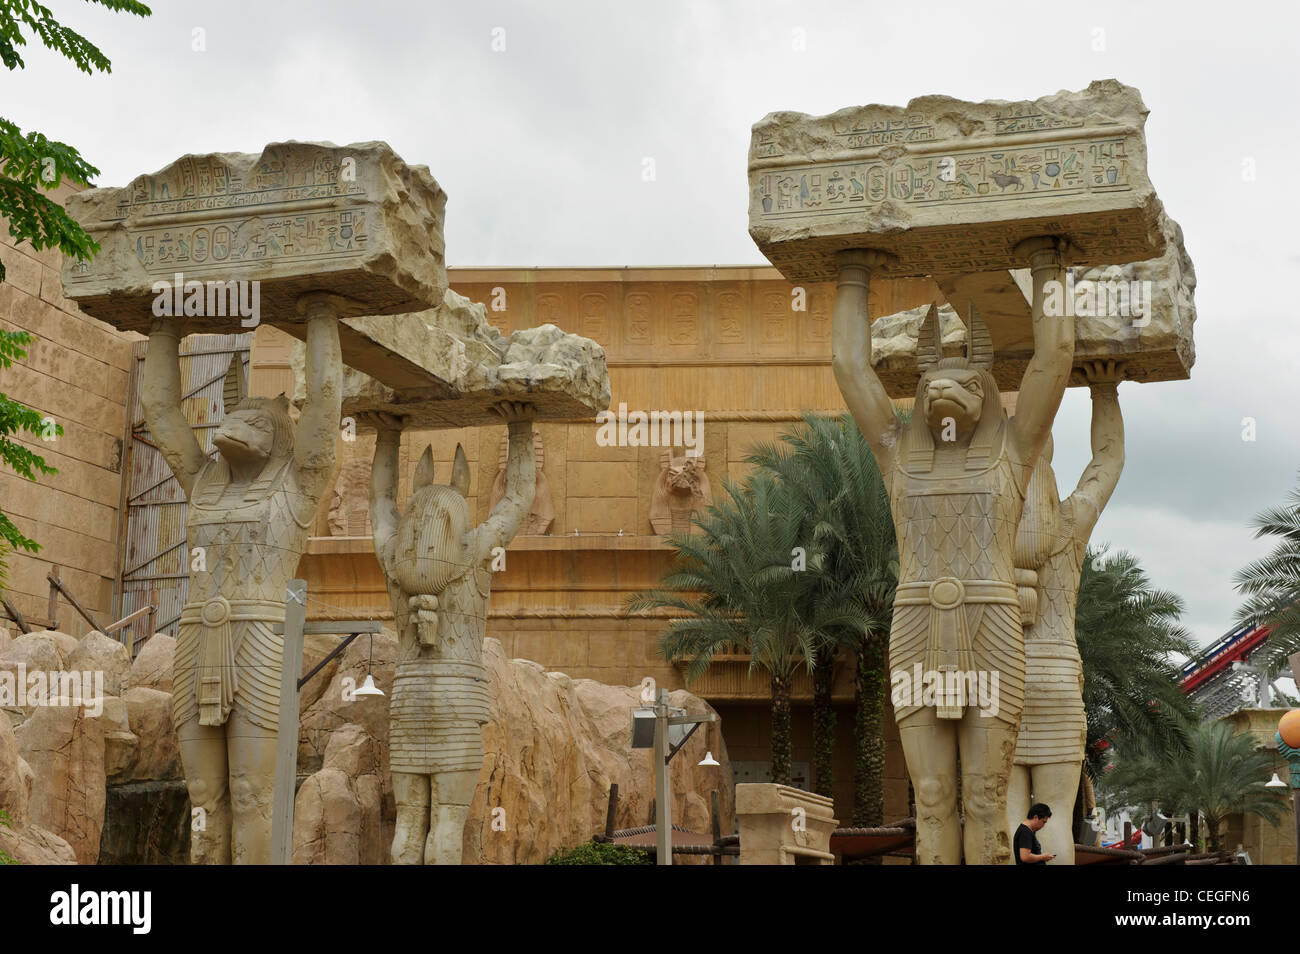 Giant Anubis Statues, Ancient Egypt, Universal Studios